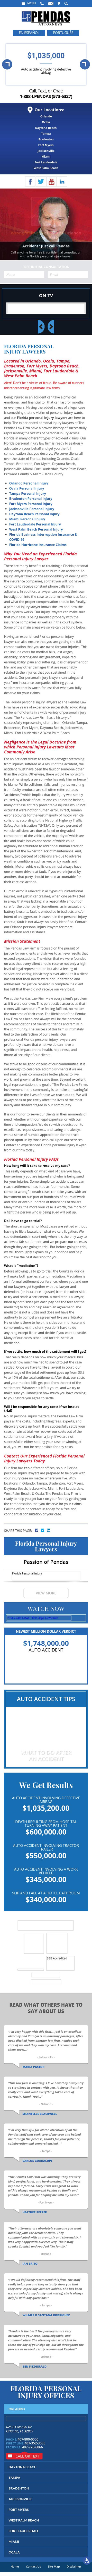 The Pendas Law Firm - Jacksonville FL Lawyers